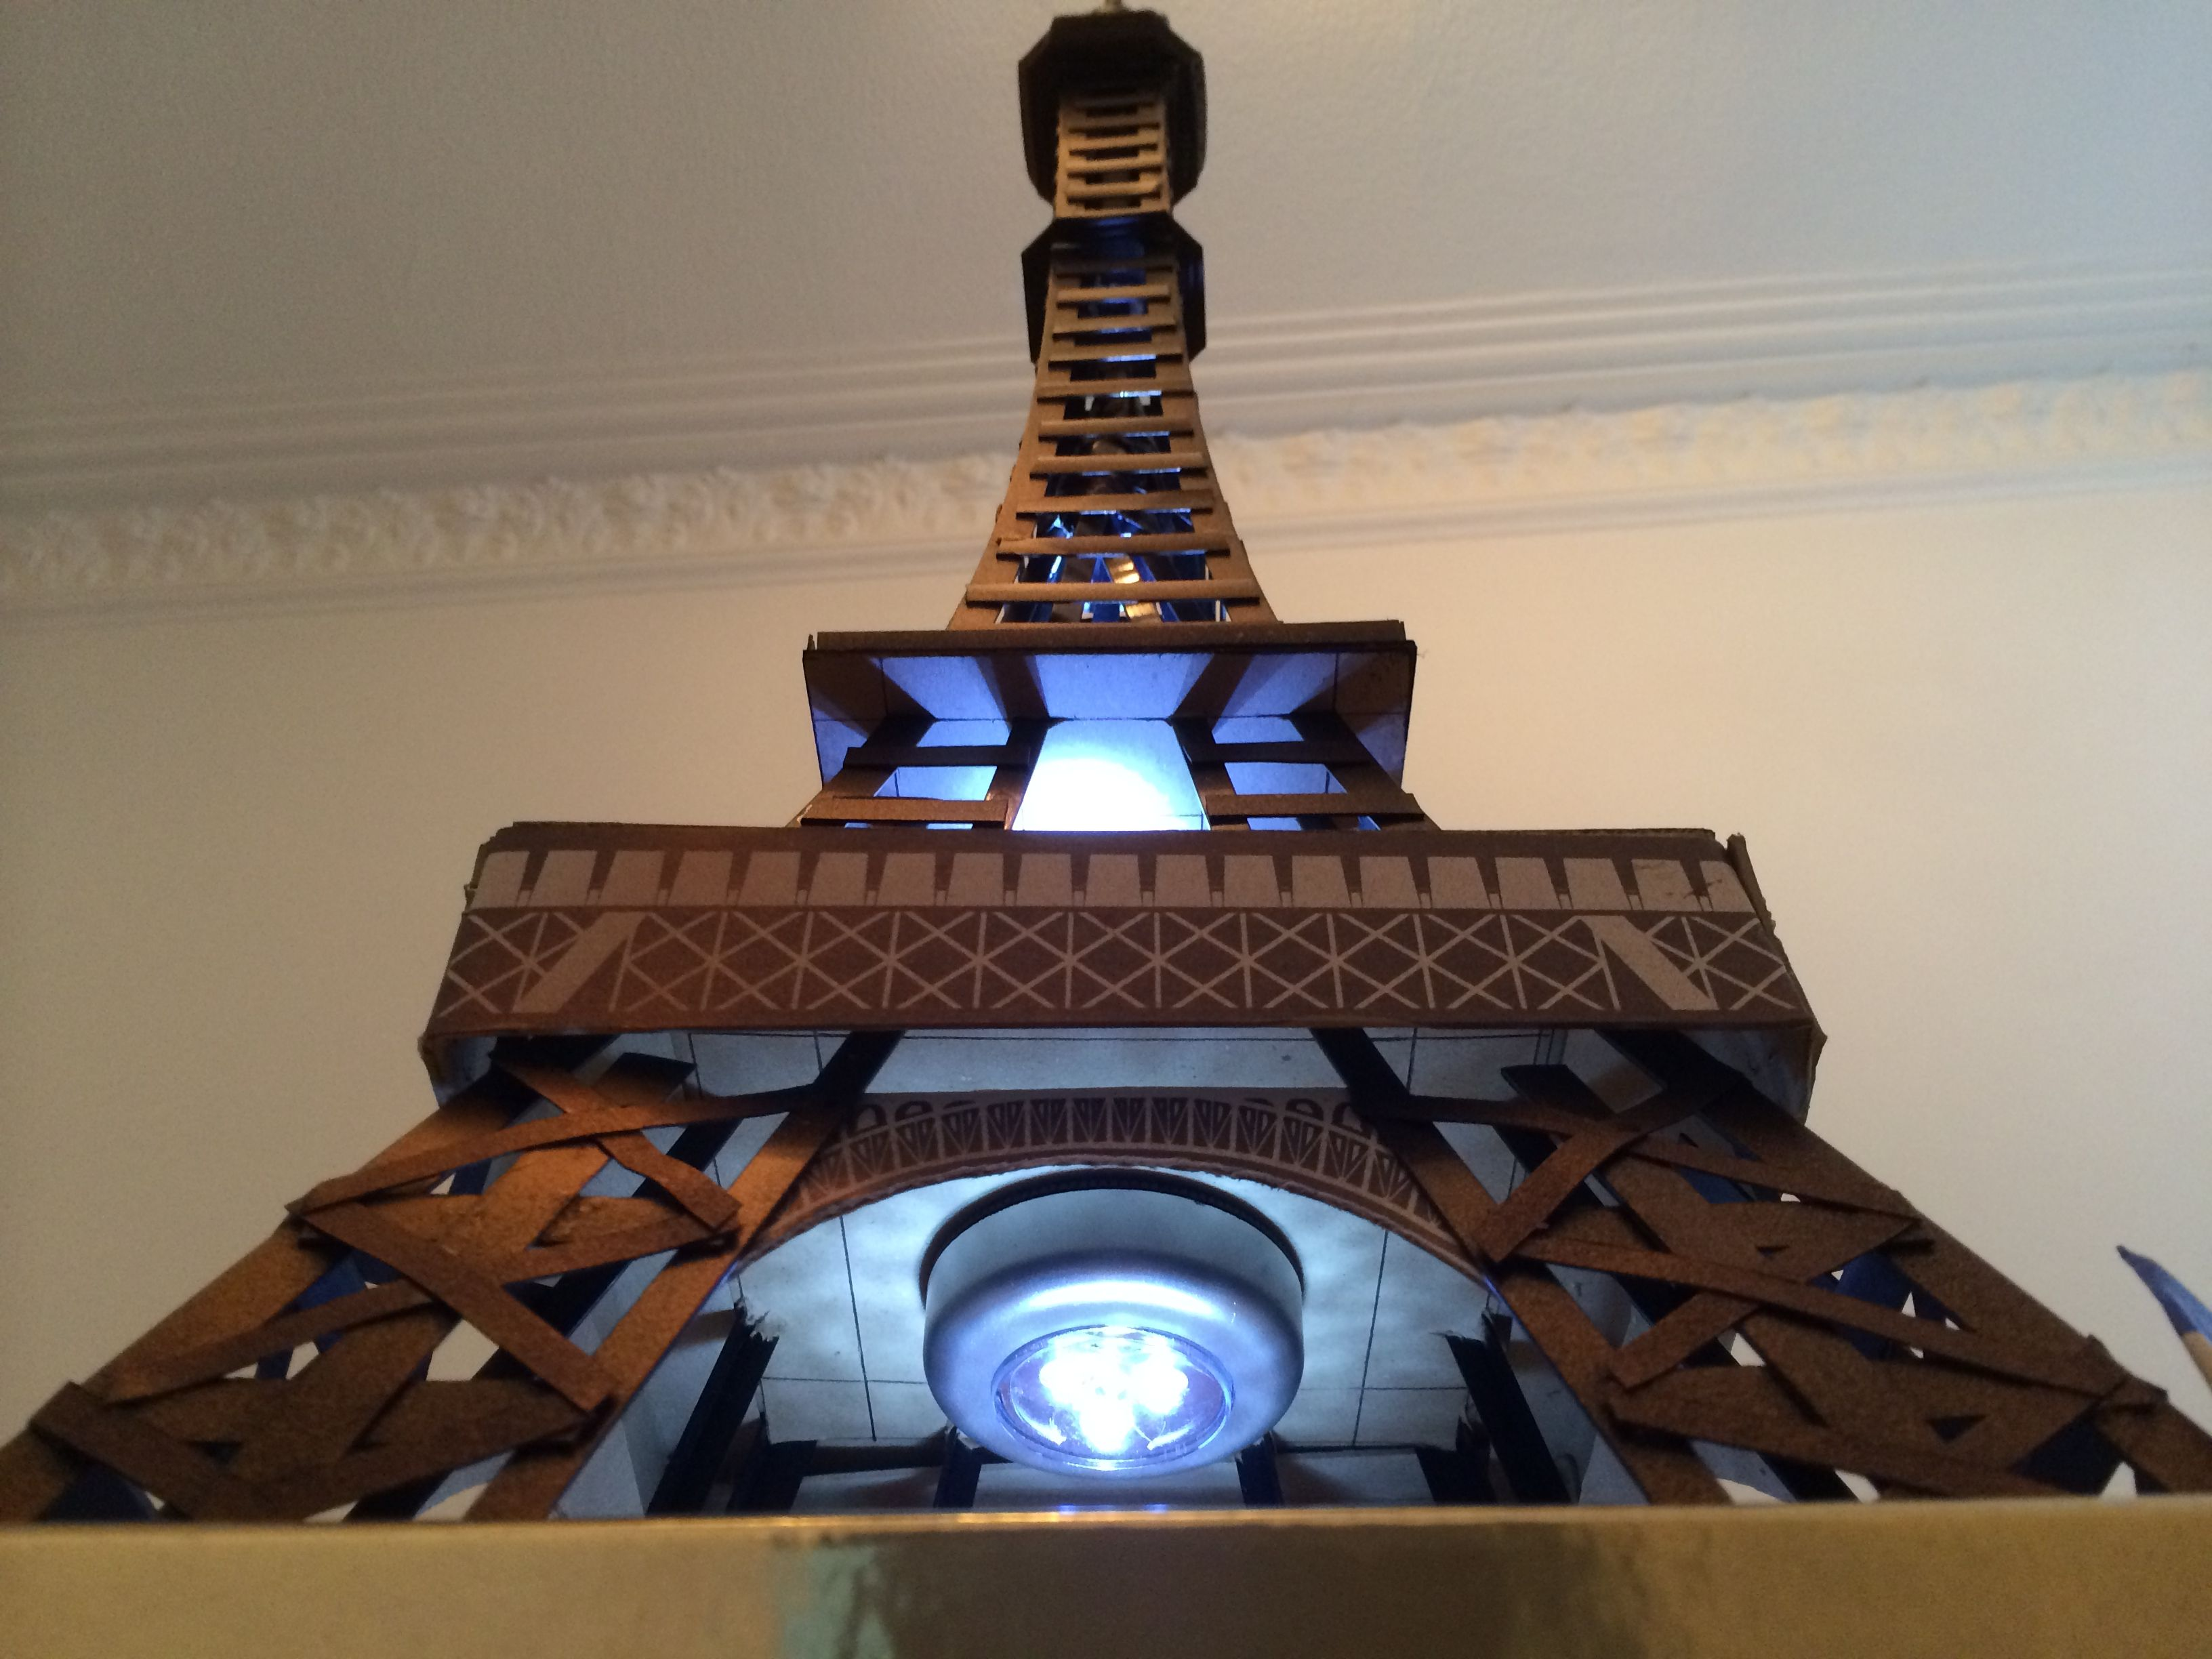 Exceptional Homemade Model Of Eiffel Tower   Created With Black Plastic Angle Edging  Rods, Card,